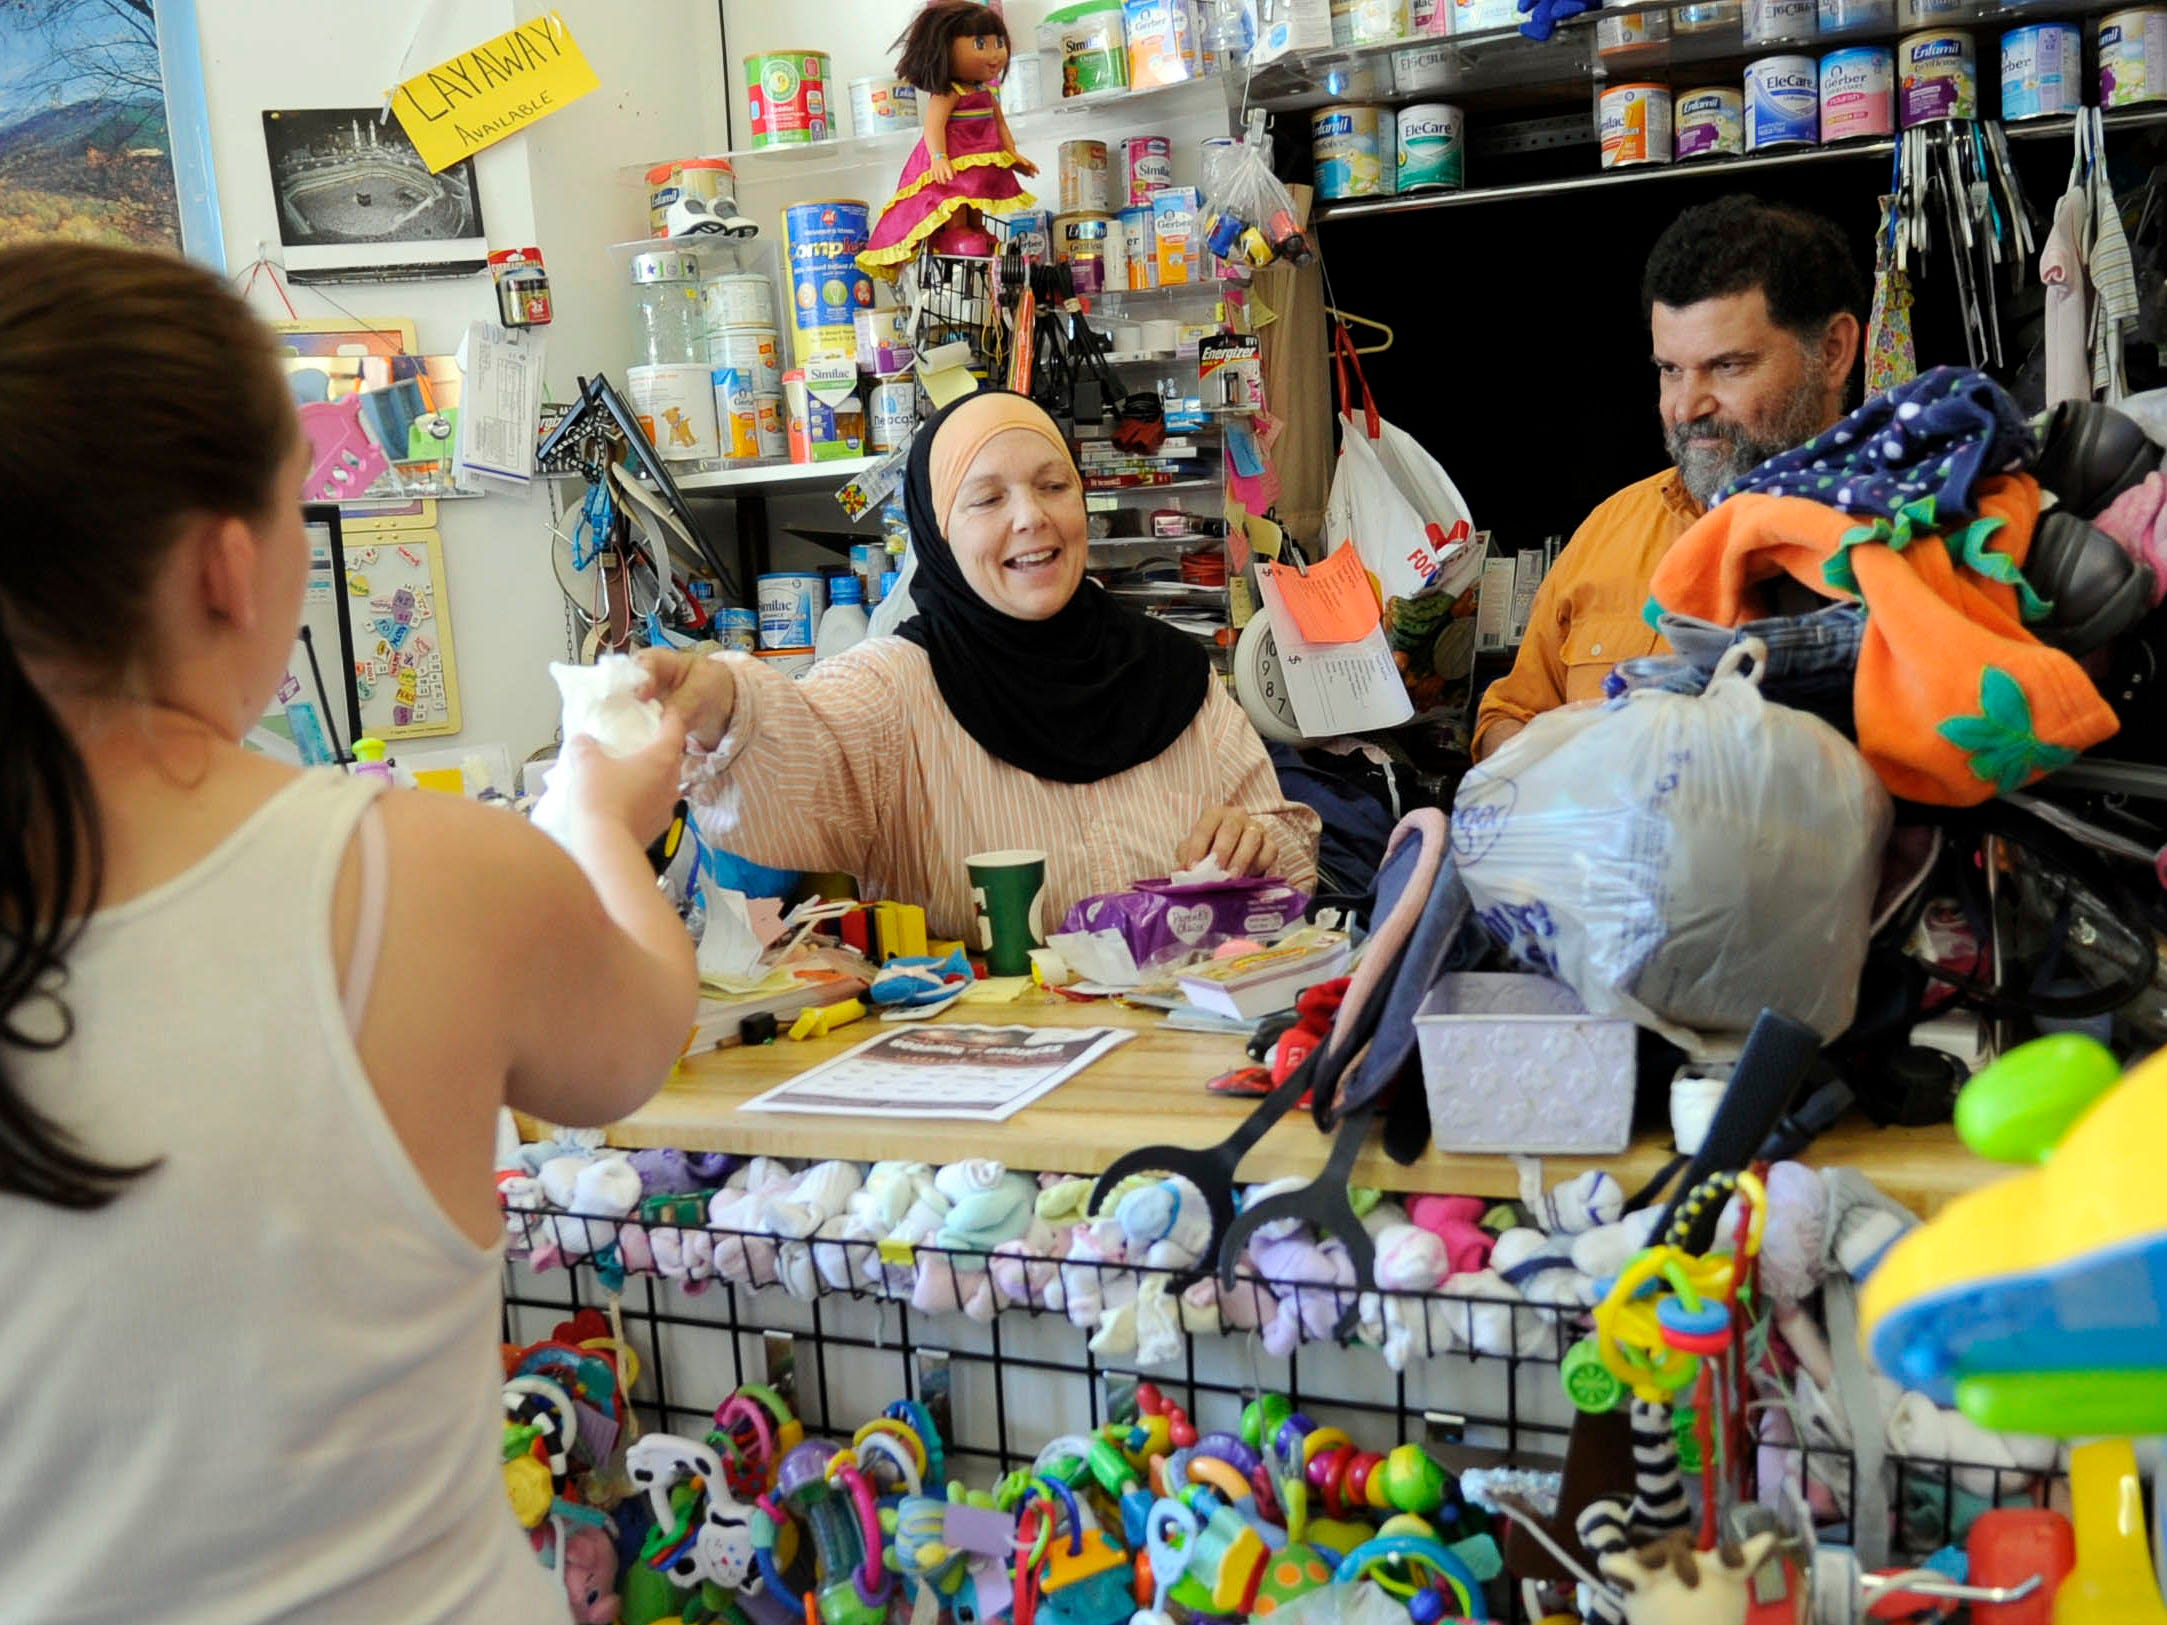 Rebecca and Fathi Husain, owners of Wee Care on Chapman Hwy., help a customer on Wednesday, Aug. 22, 2012. Wee Care is one of twenty south Knoxville businesses taking part in the South Knoxville Booming the Business loyalty card. Entrants must get 15 of the 20 participating businesses to stamp their card, giving them a chance to win $2,500, a VIP pass to Boomsday, and turning on the lights of the newly restored JFG sign.